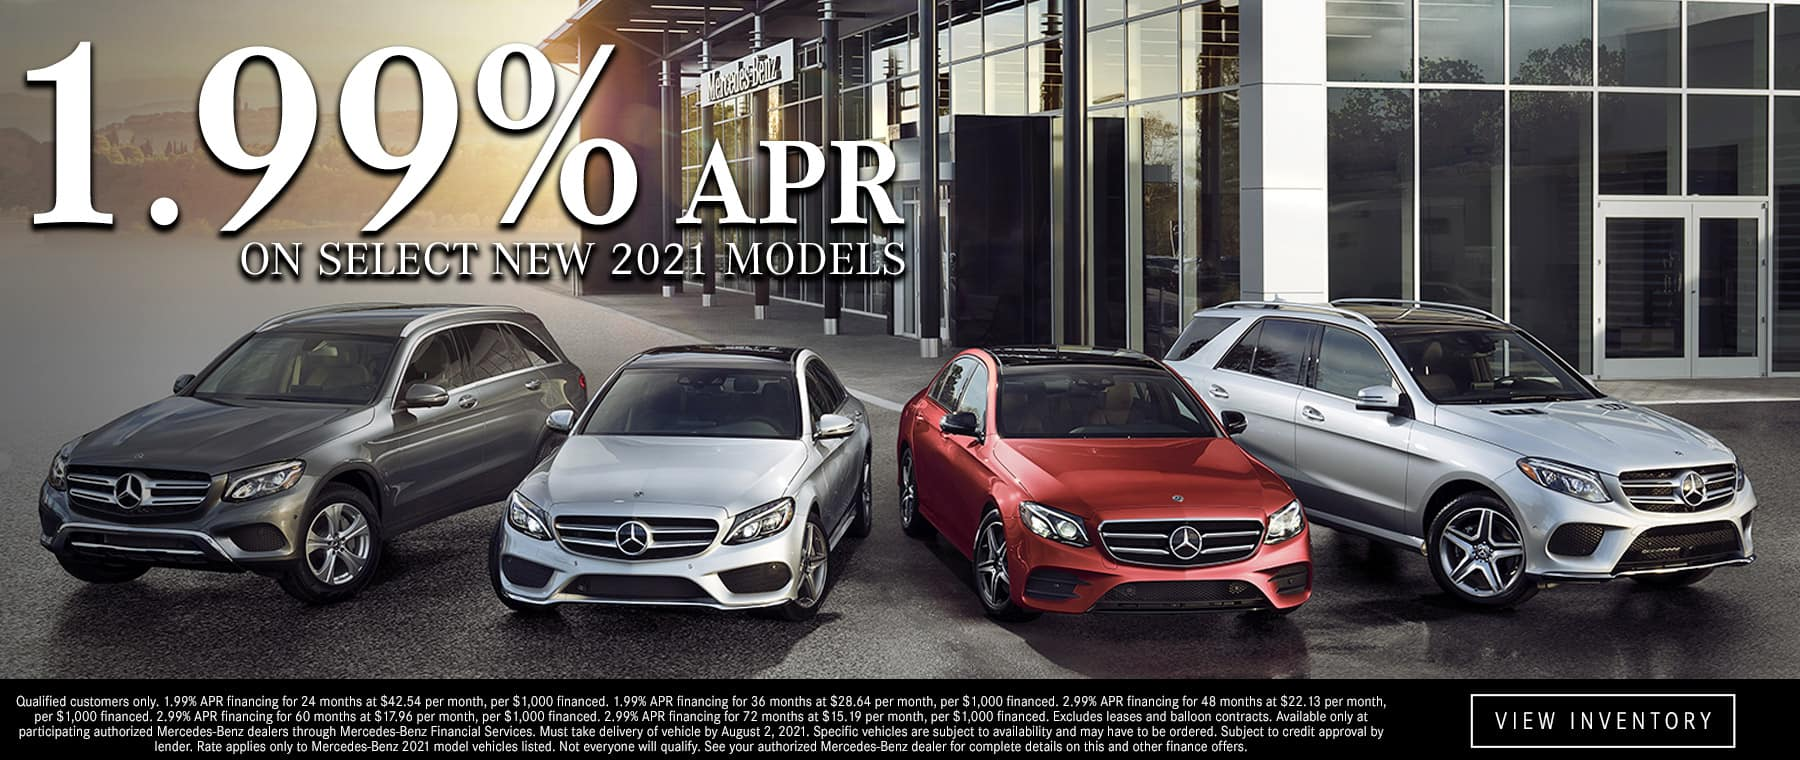 Special on new 2021 Mercedes-Benz vehicles